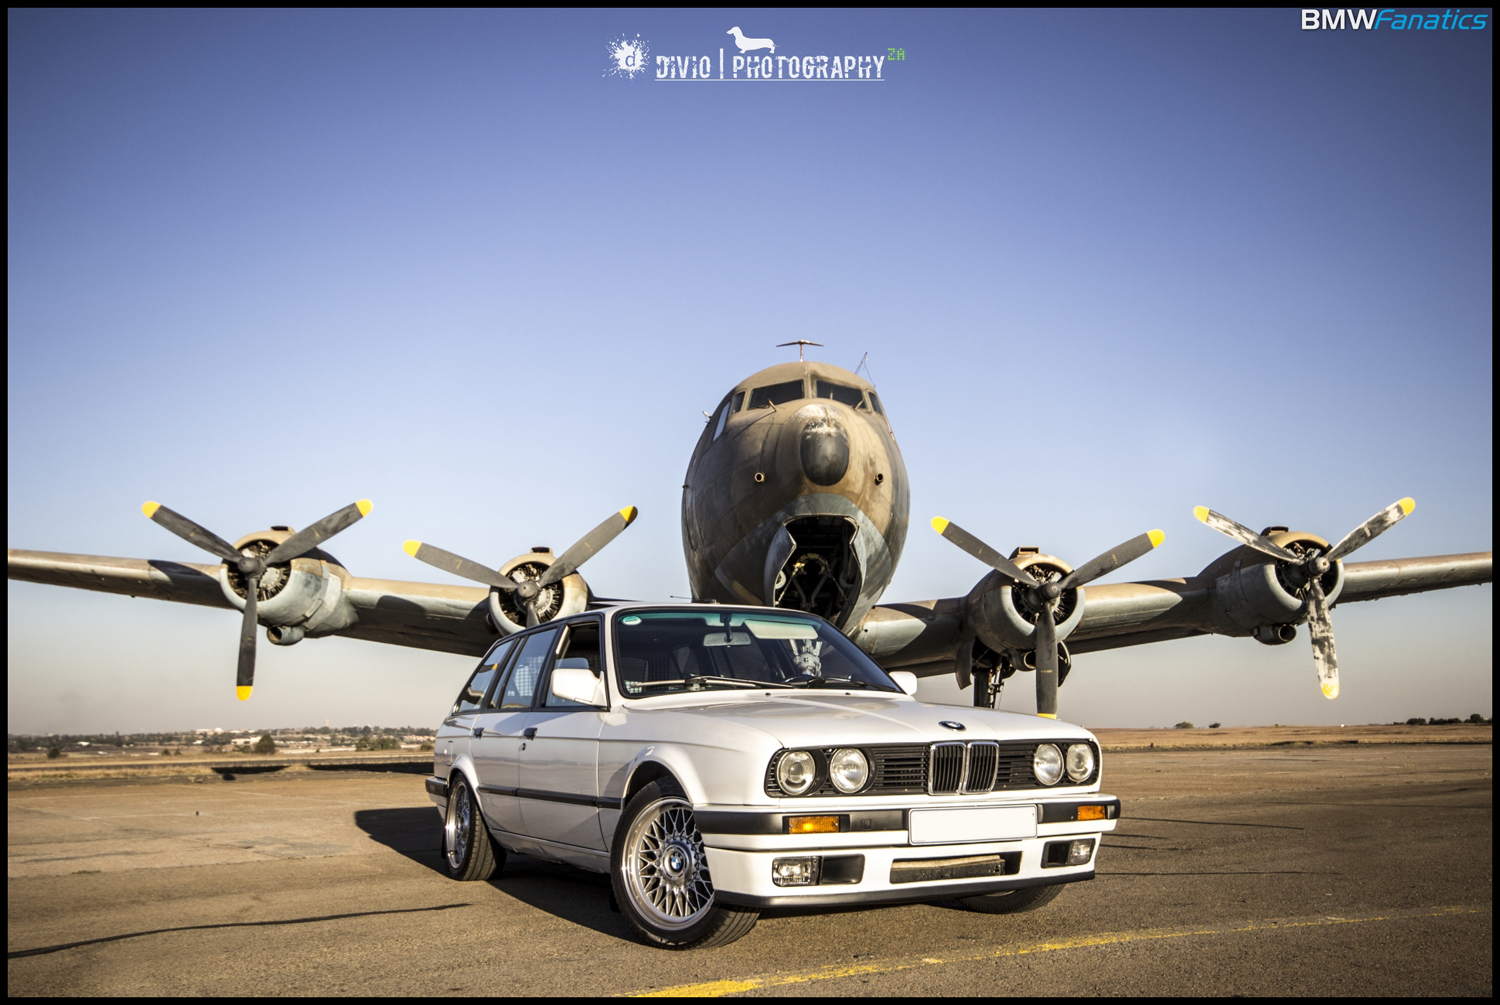 South African Bmw Meet For Charity Results In Impressive Shoot On Airfield Autoevolution